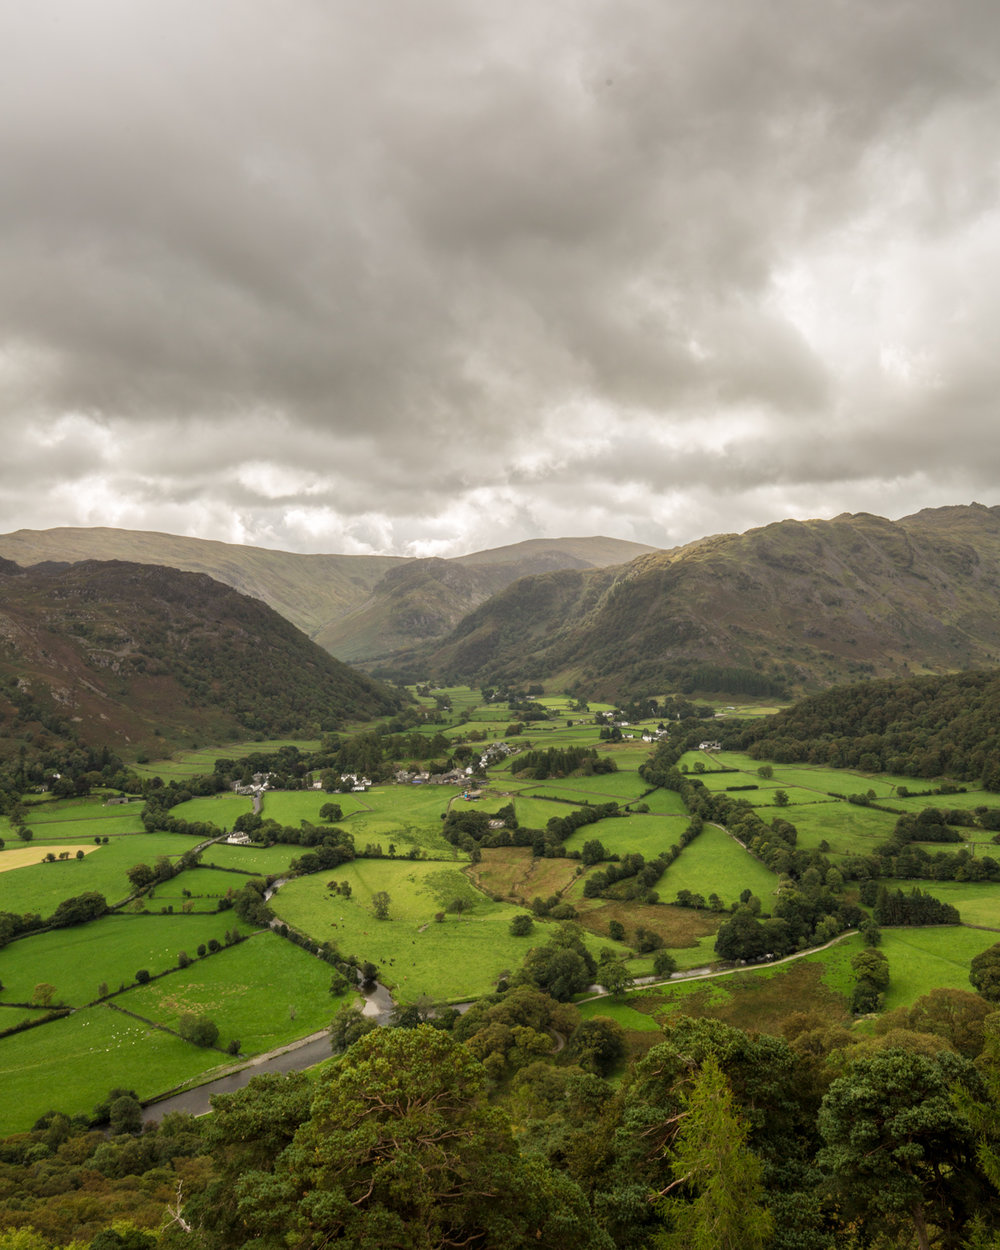 The view of Borrowdale from Castle Crag